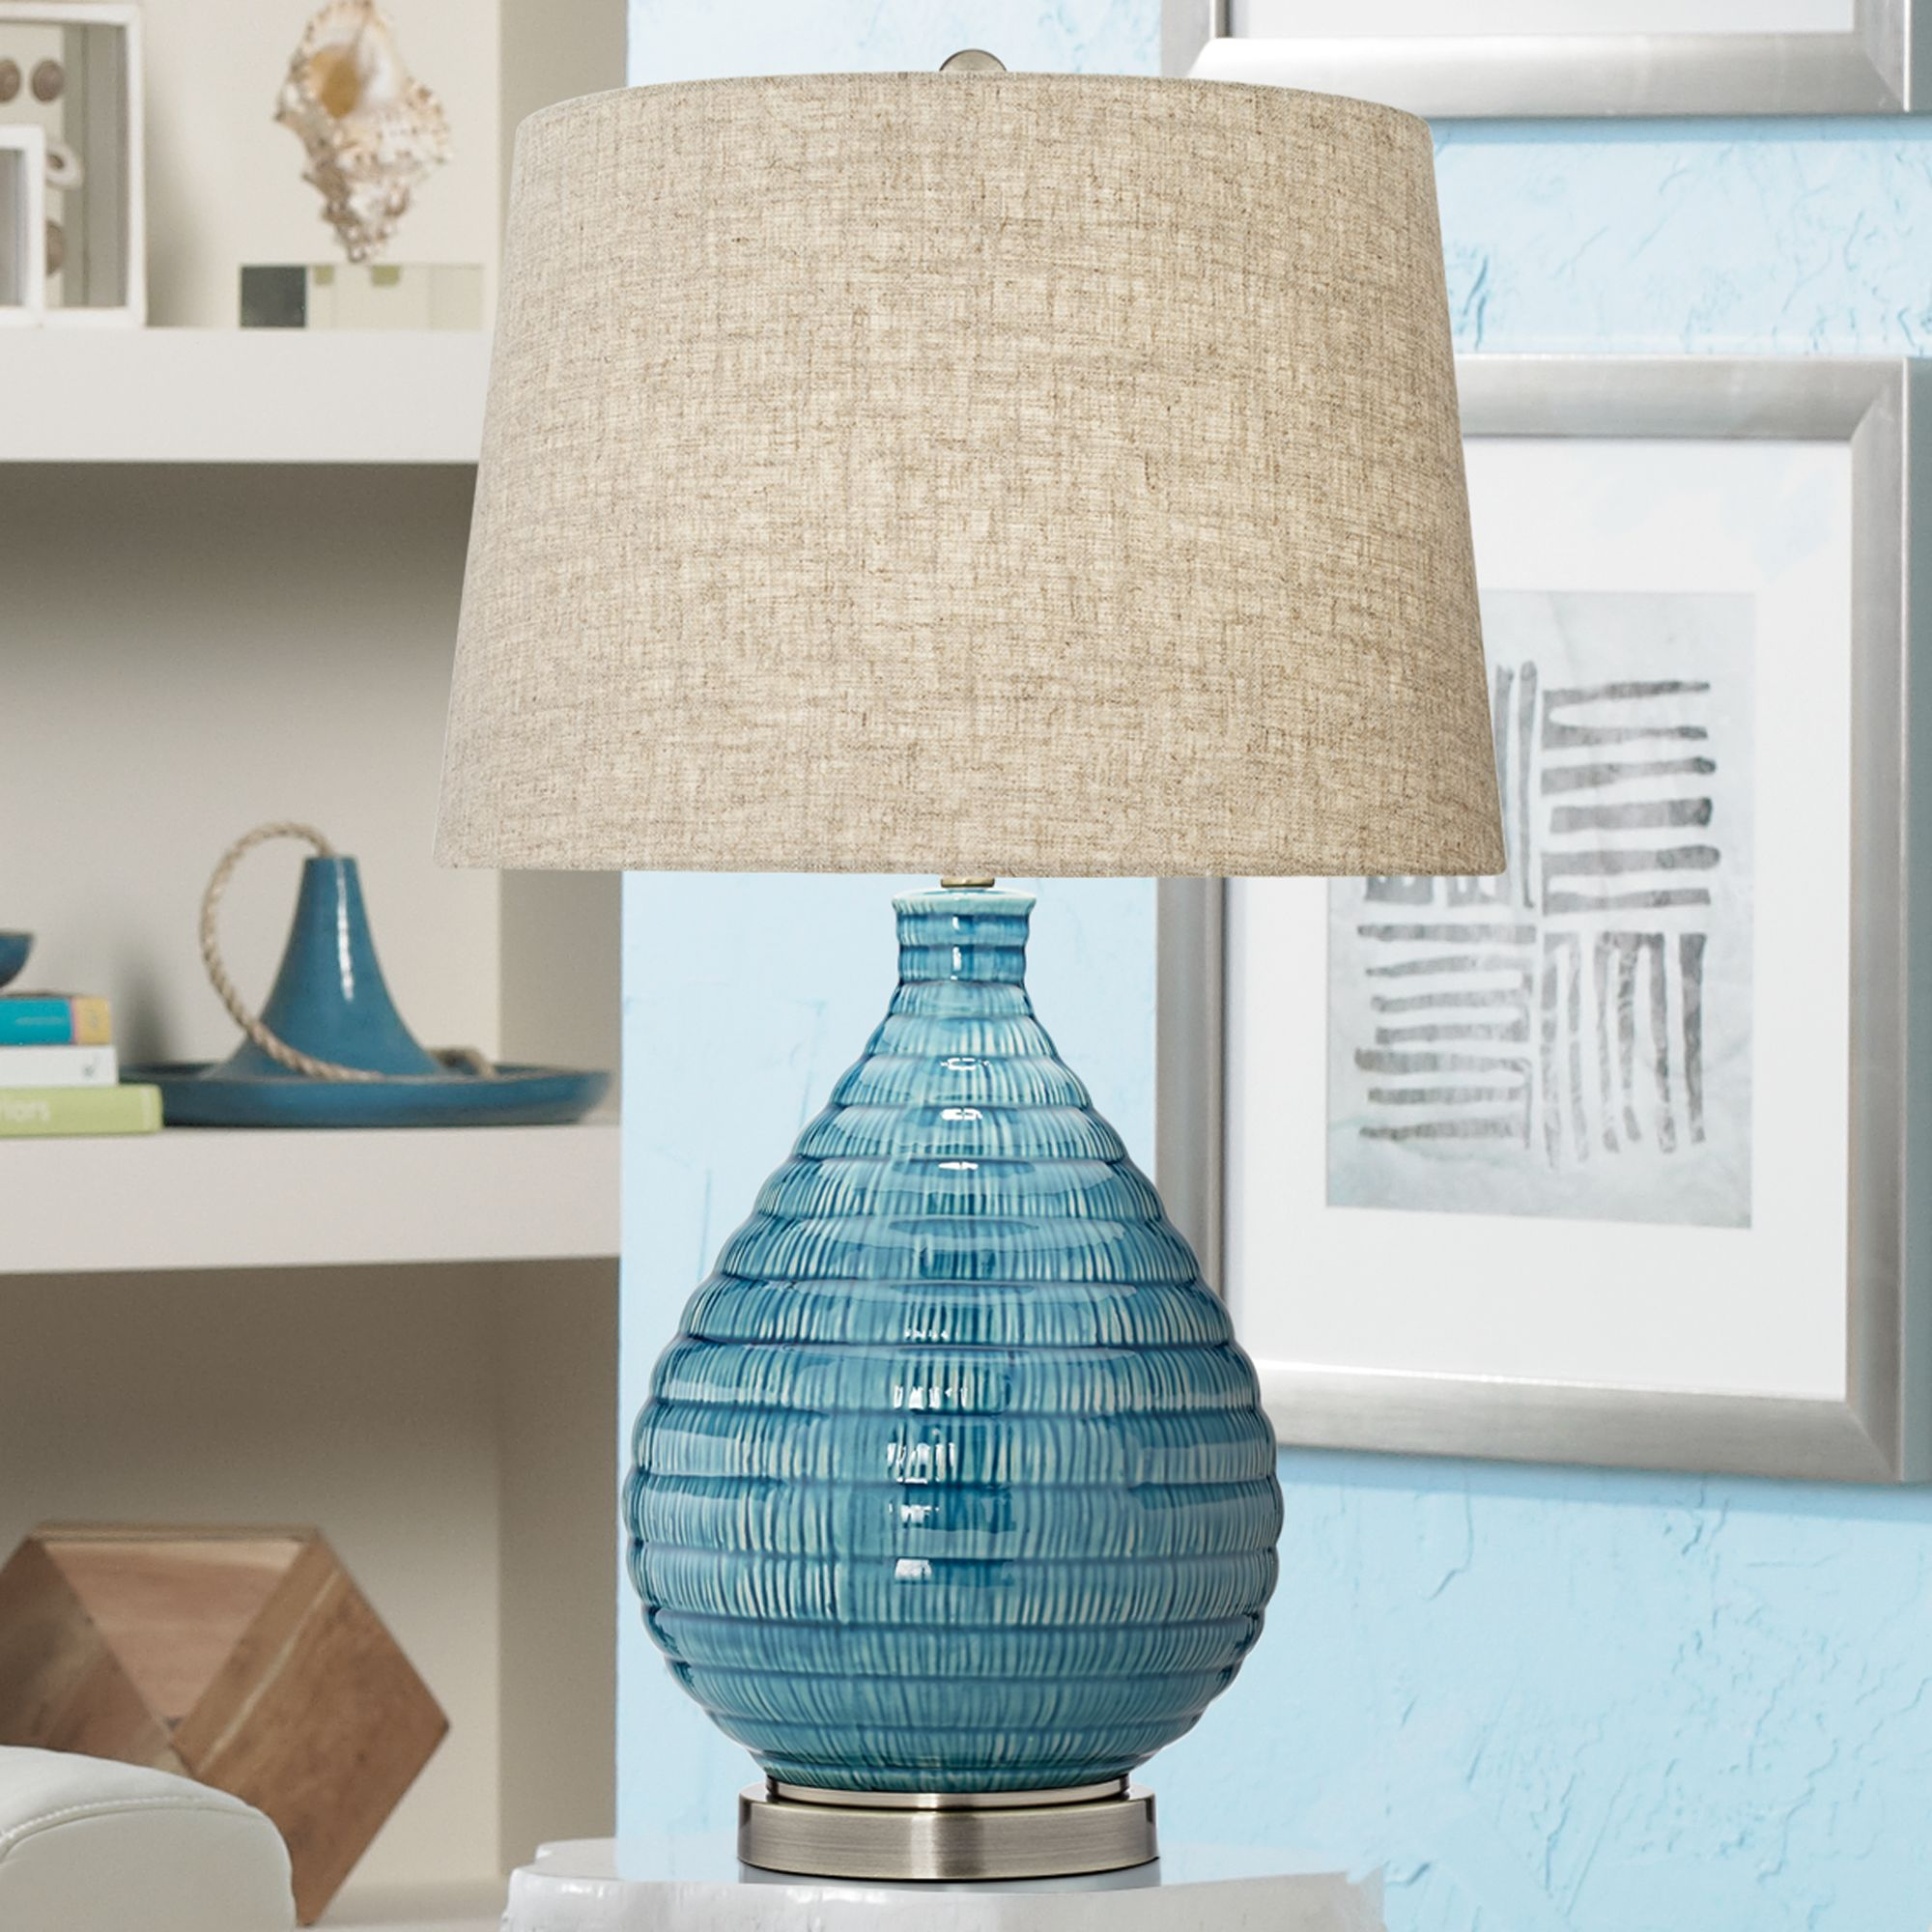 Details About Mid Century Modern Table Lamp Textured Ceramic Sky Blue Glaze For Living Room